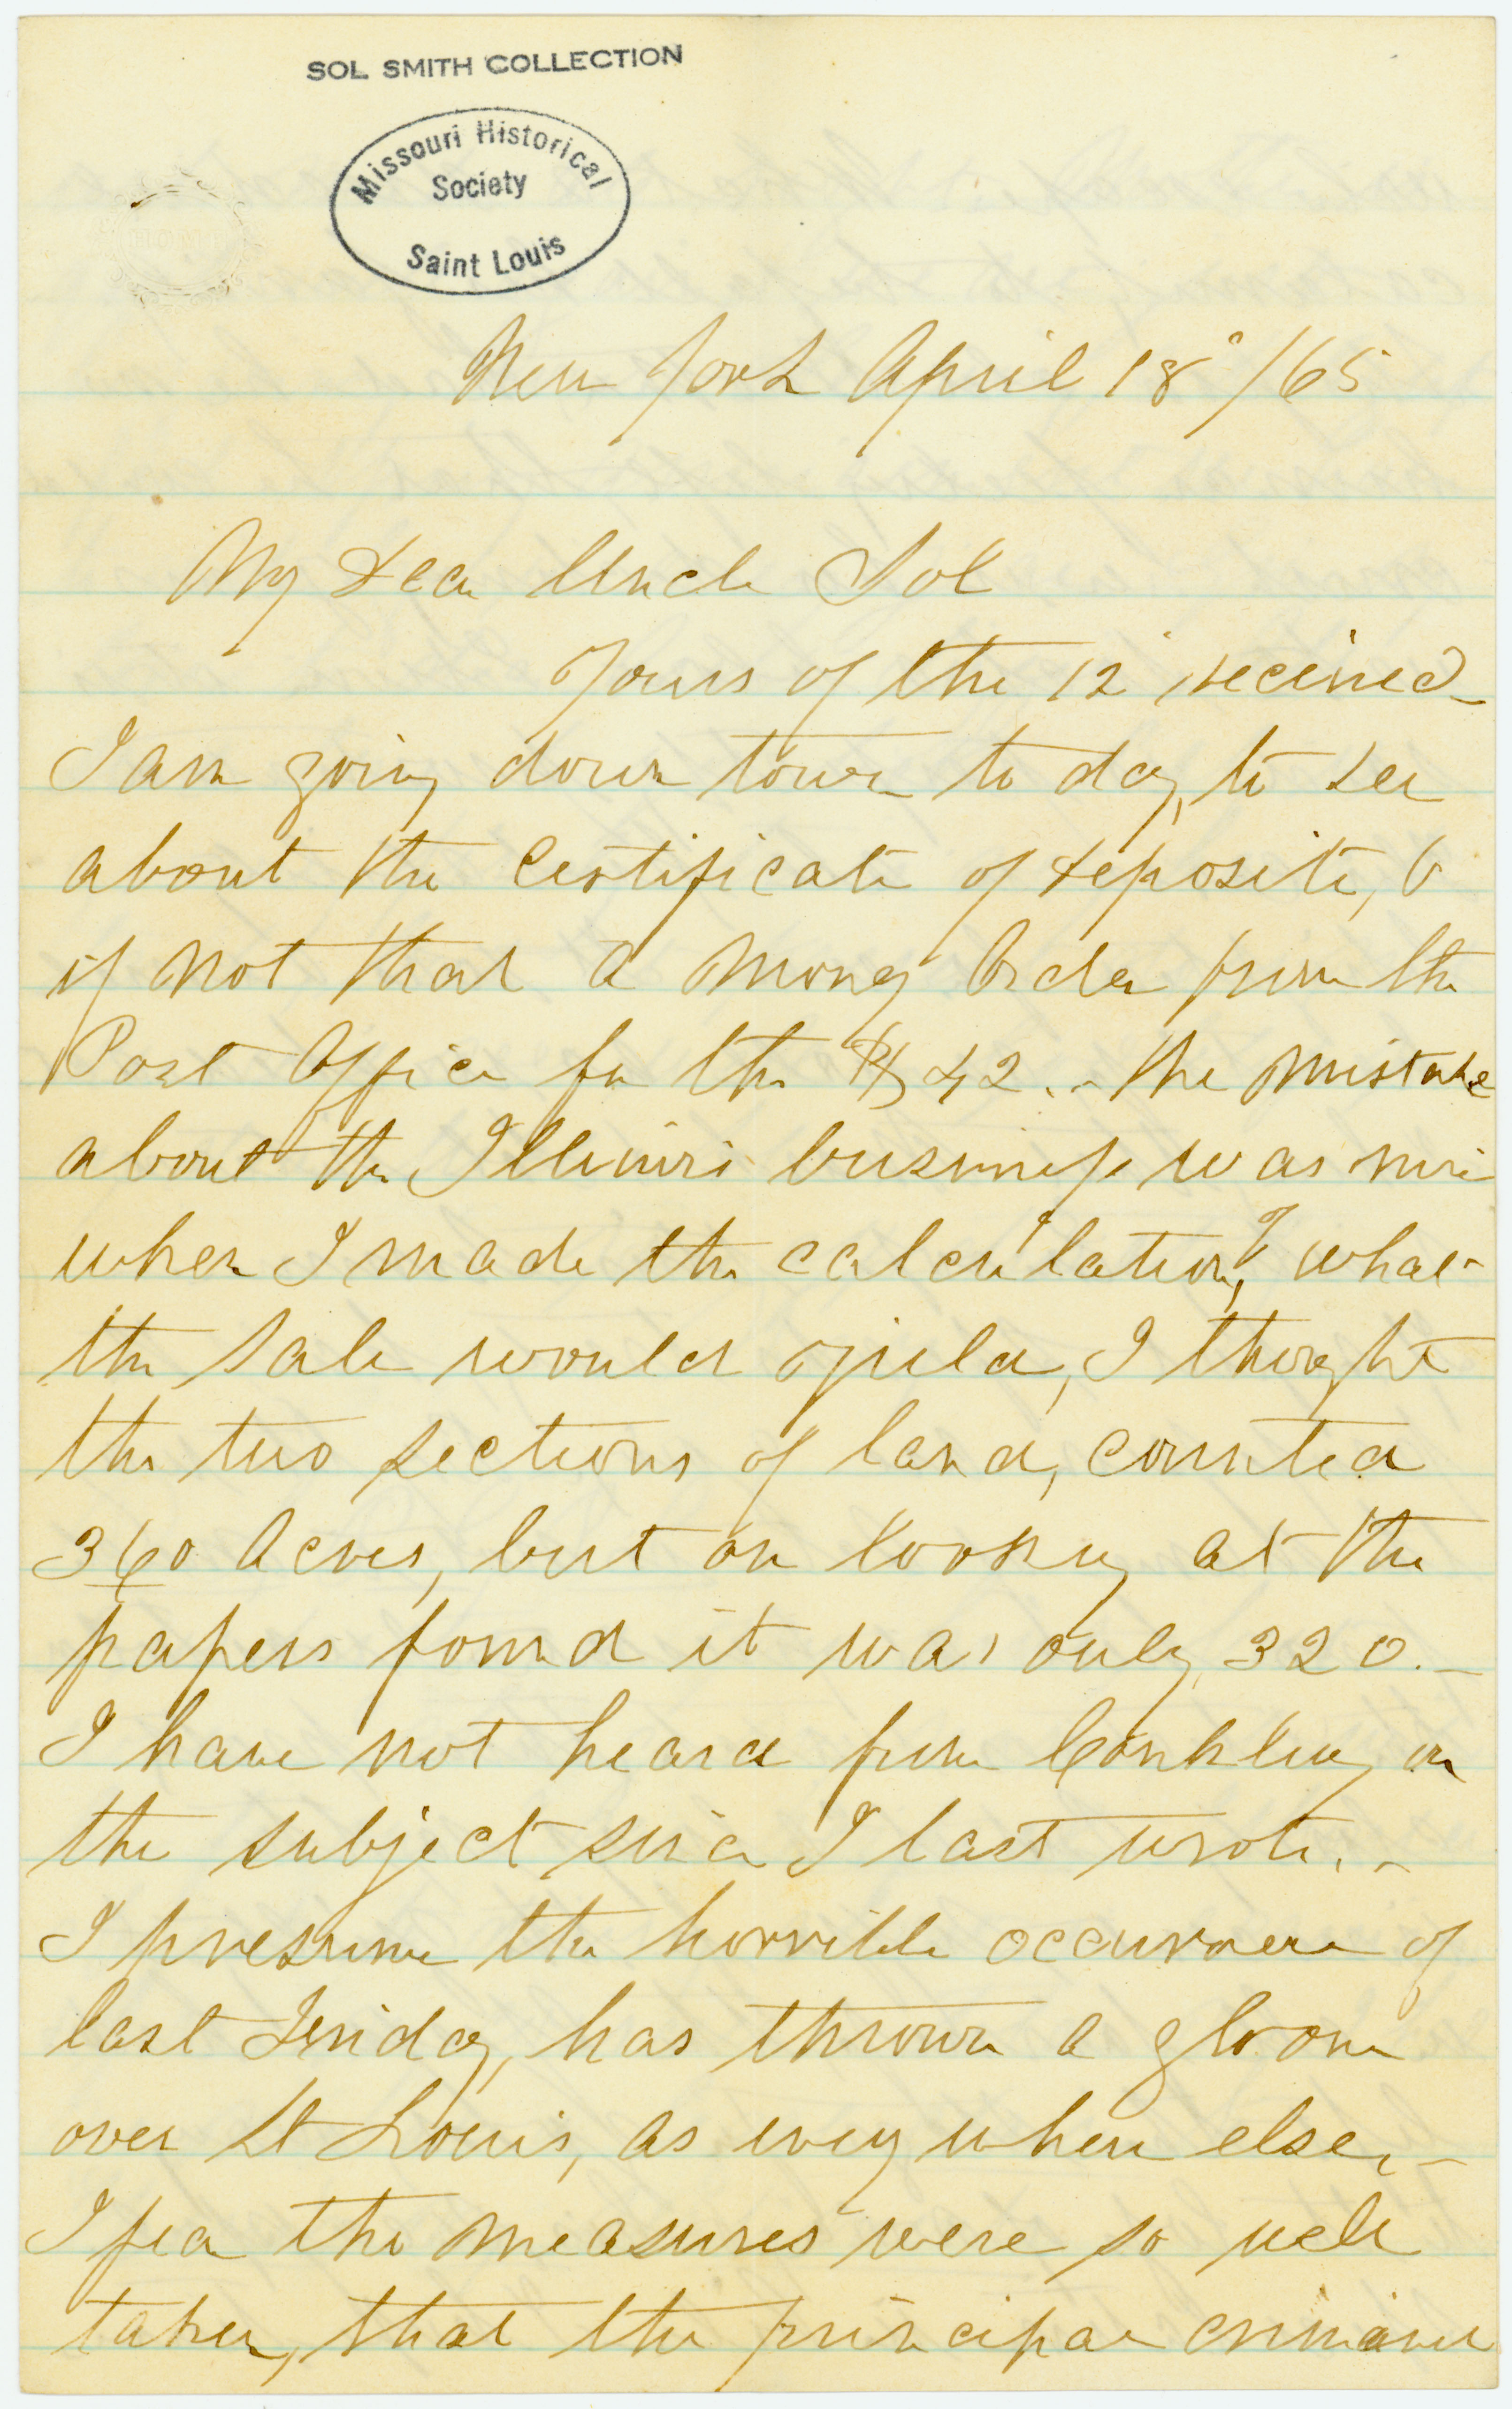 Letter of Mary [Mary Farren], New York, to Uncle Sol [Solomon F. Smith], April 18, 1865